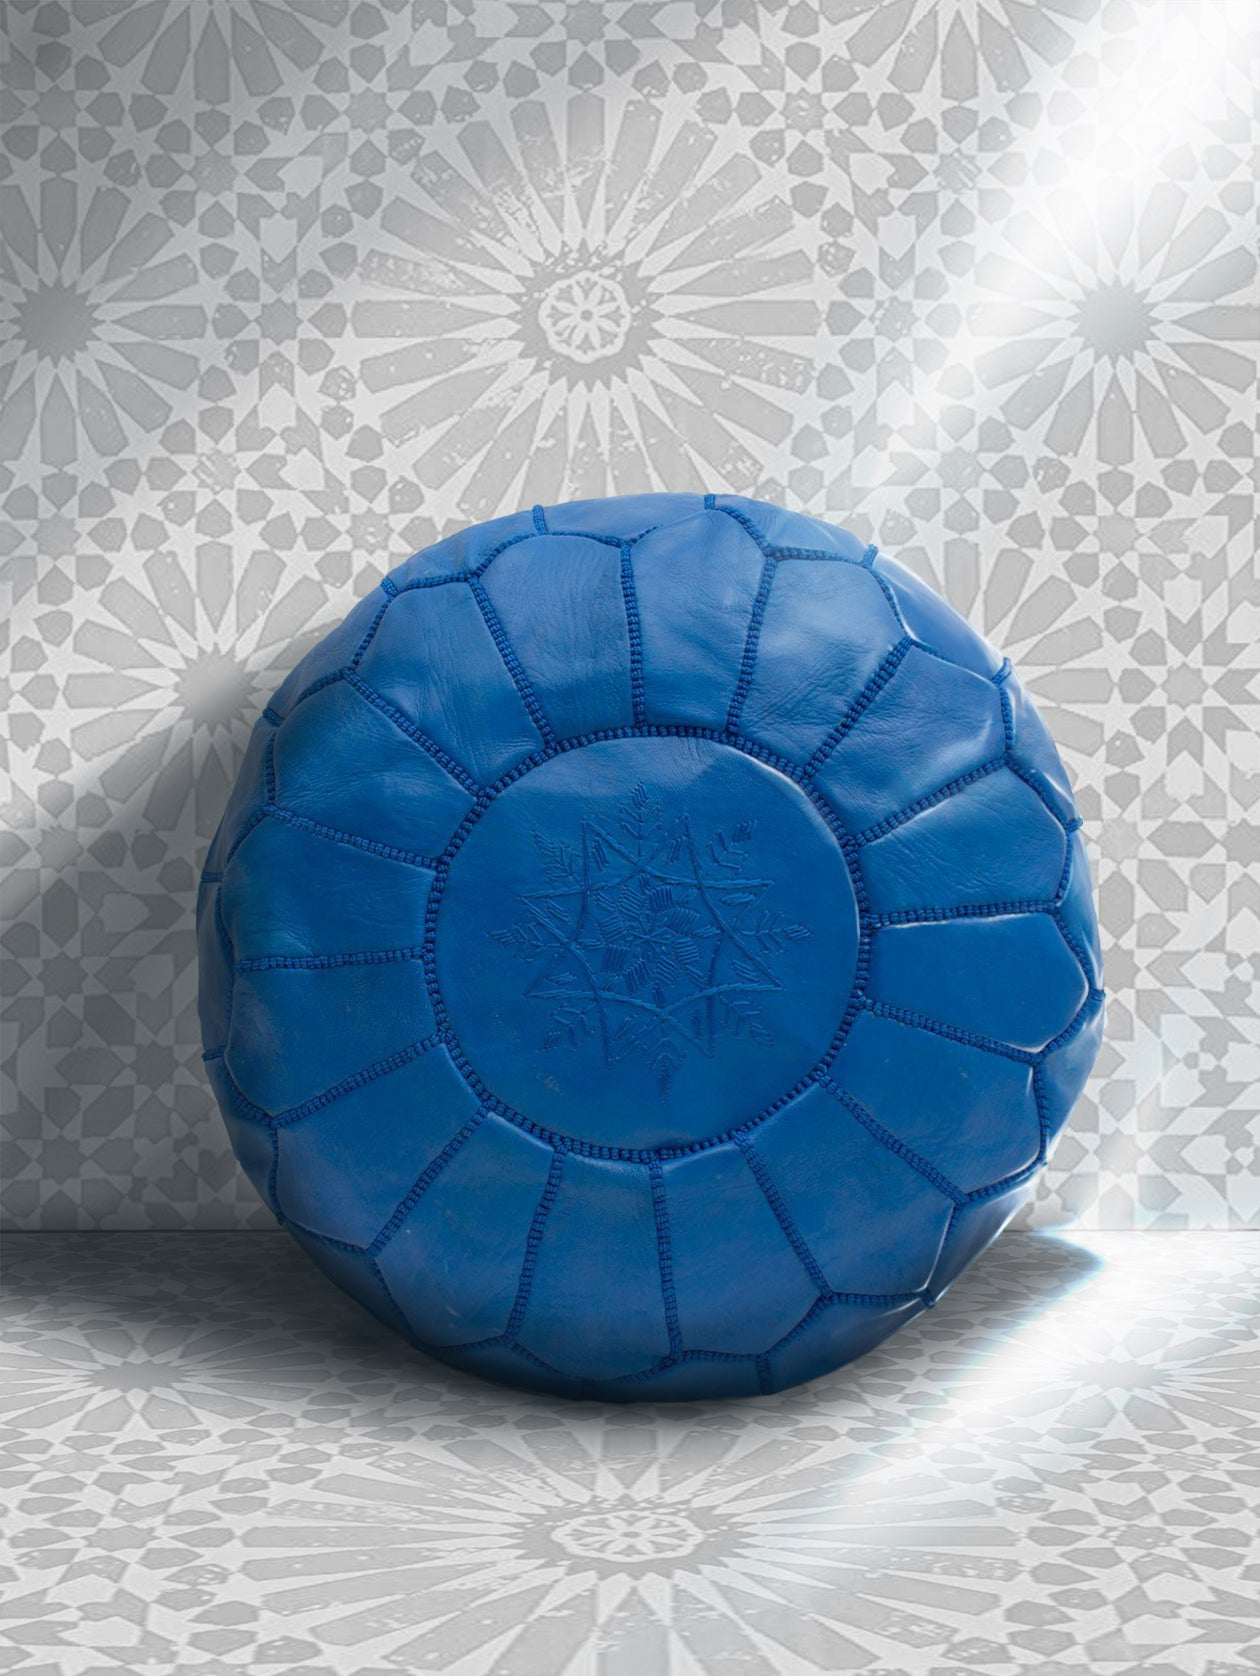 Premium Handmade Moroccan Leather Ottoman Pouf Bright Blue